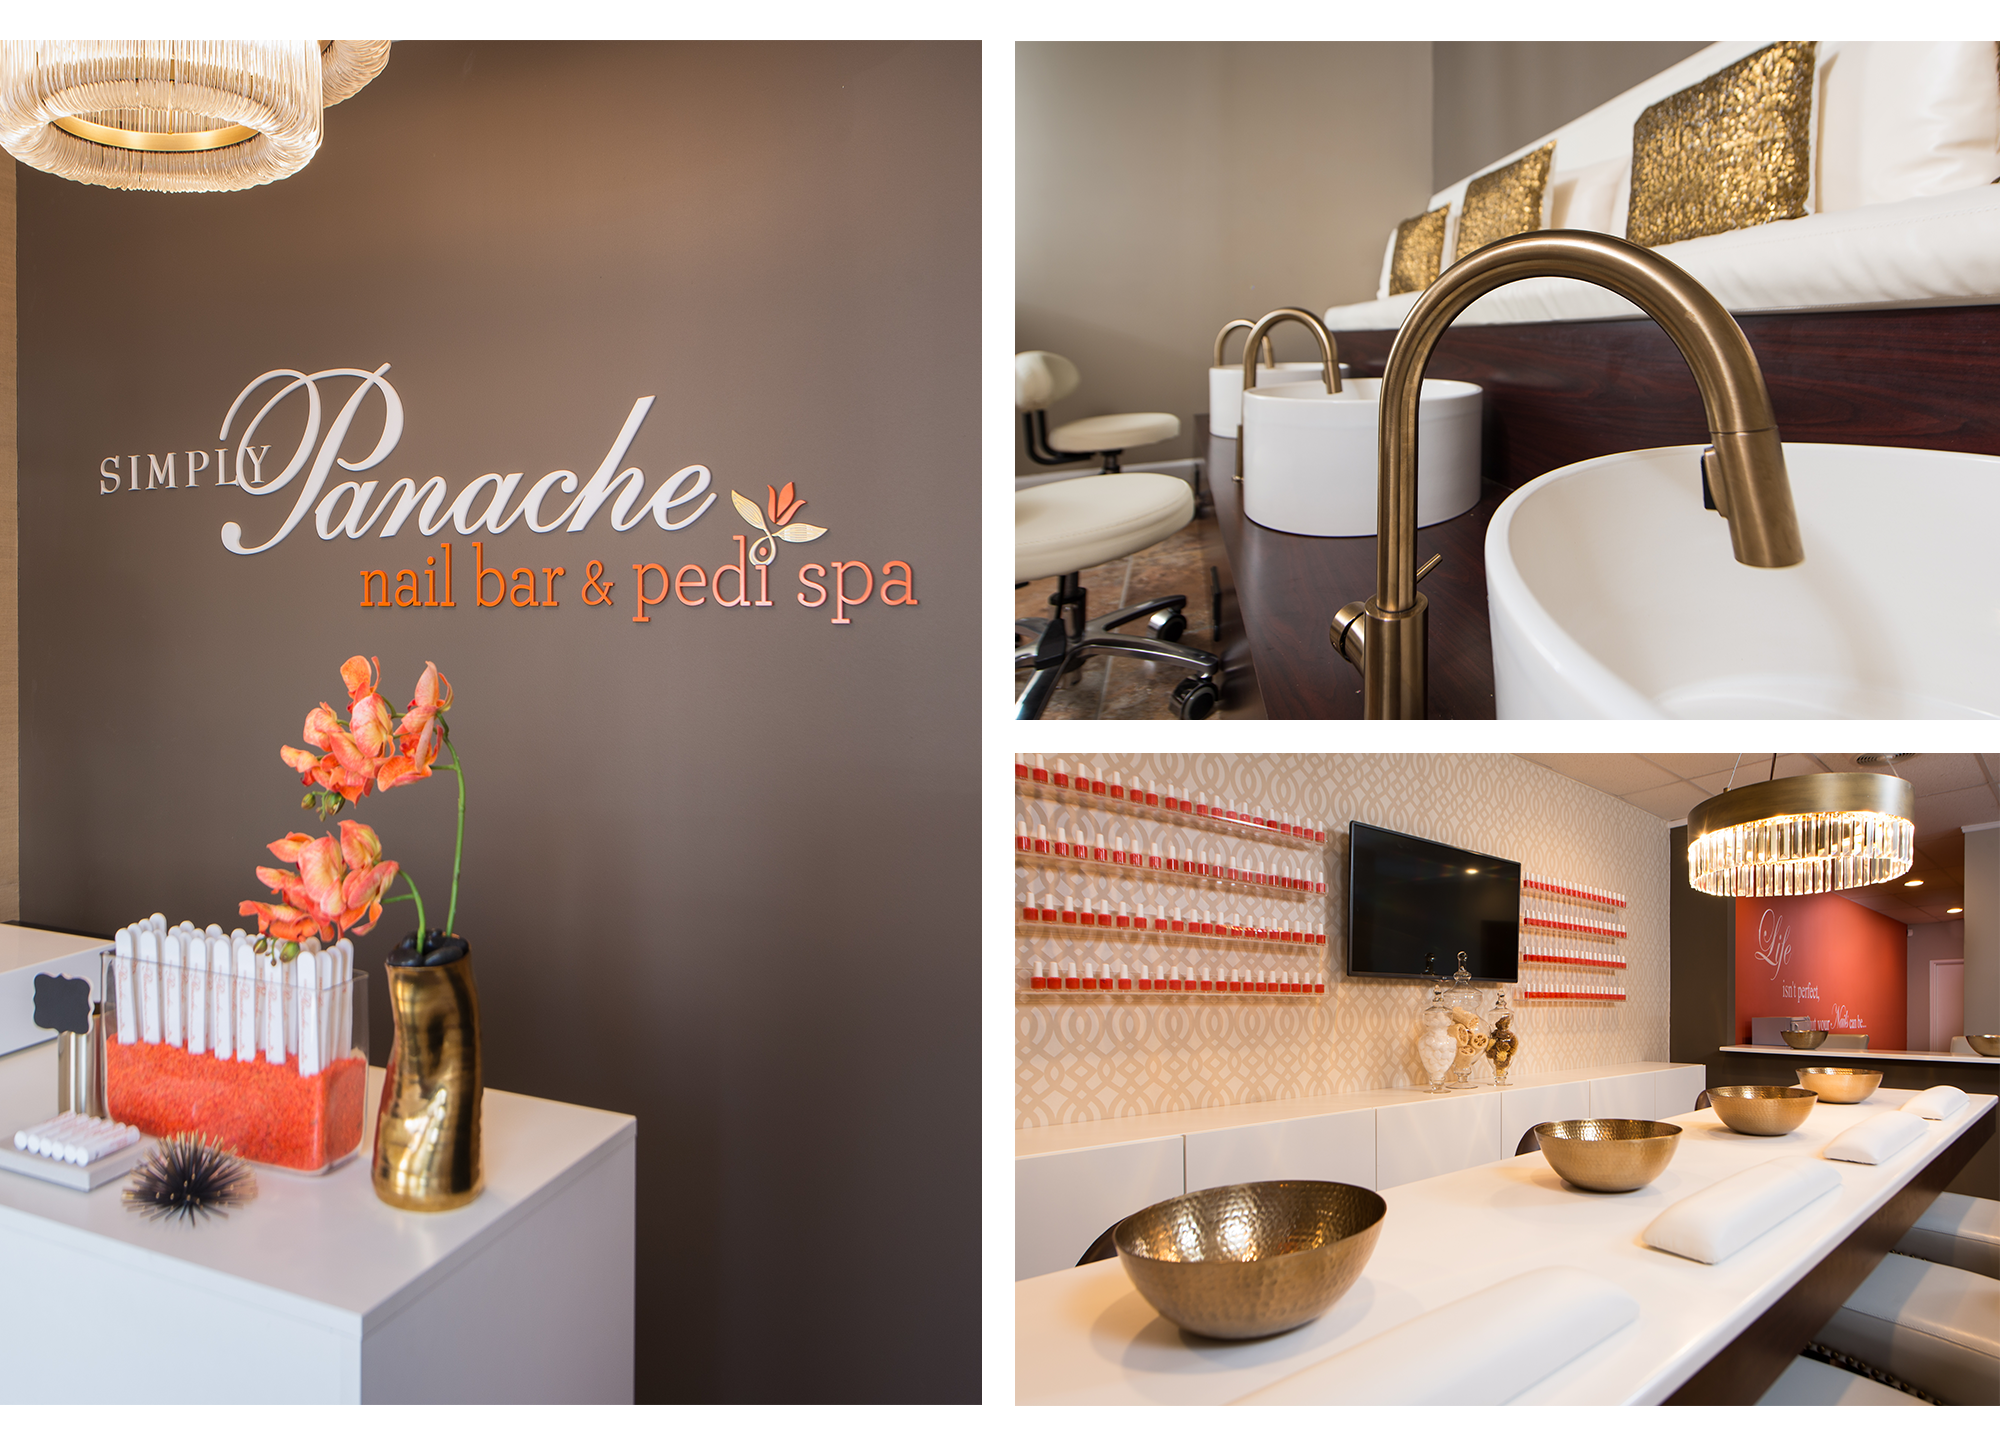 Simply Panache Nail Bar and Pedi Spa